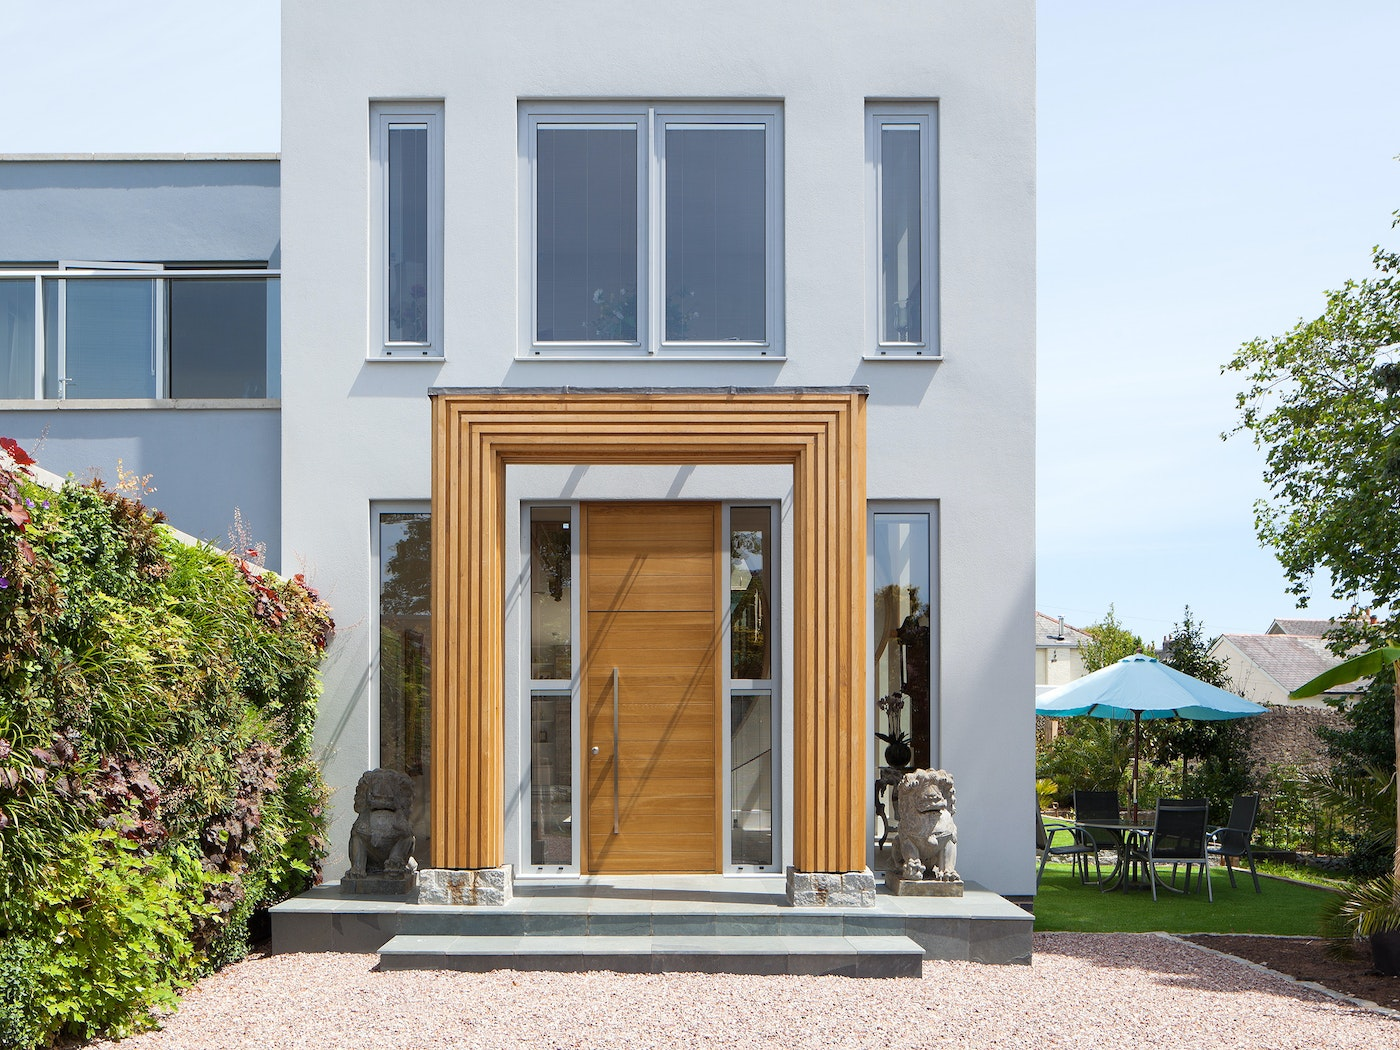 Making a door look bigger that it actually is helps create a grand entrance